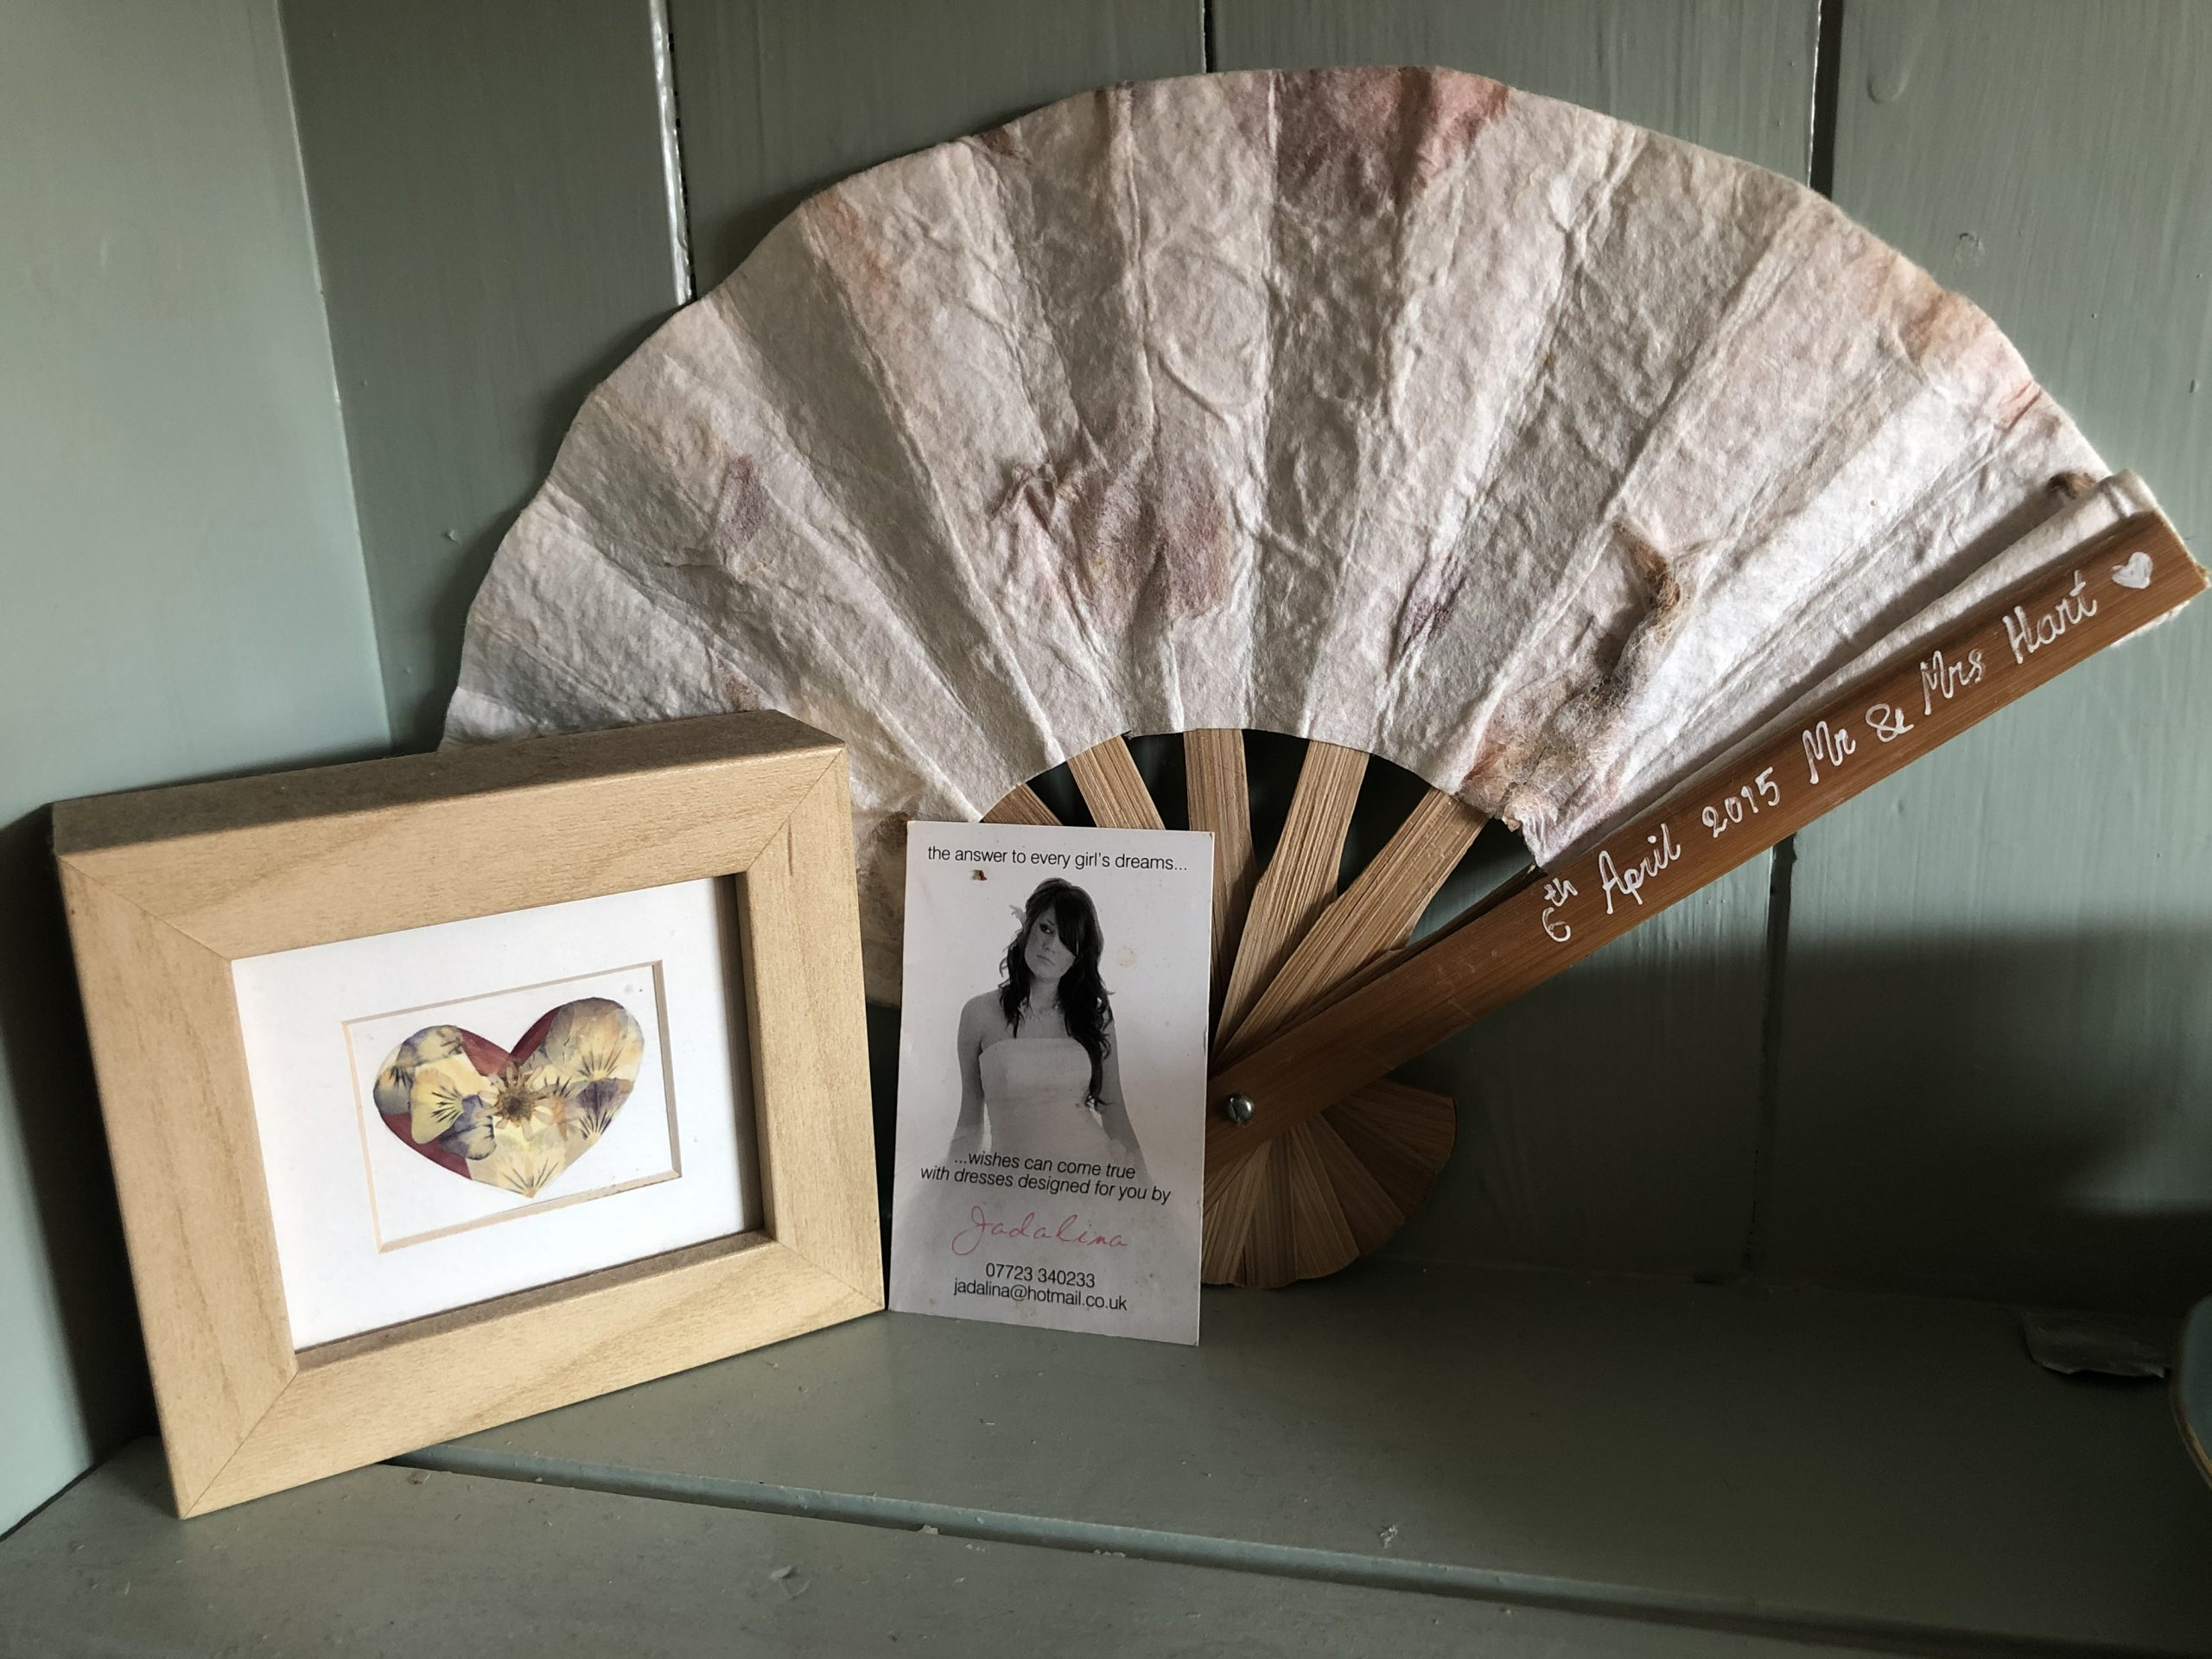 Fan and image